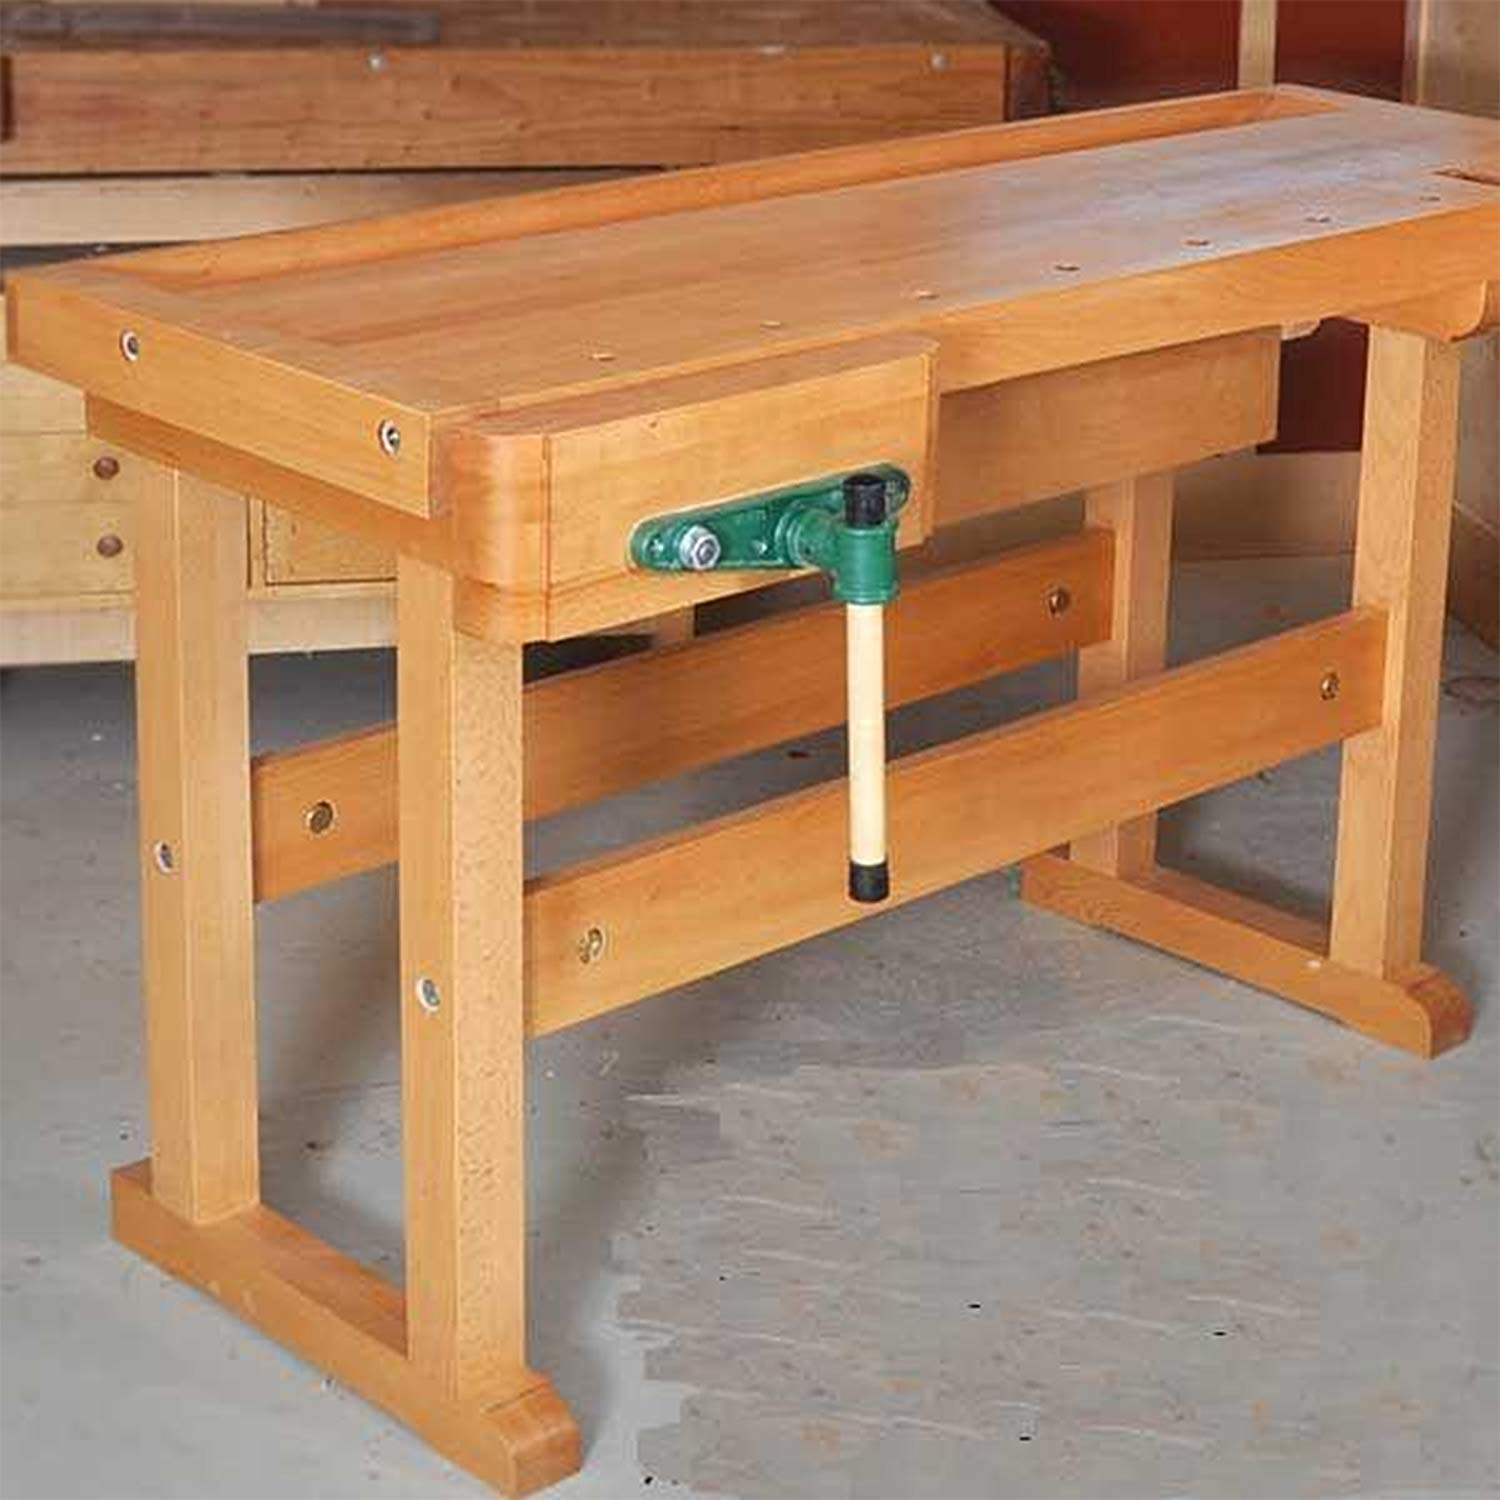 Wooden work table cordless drill case